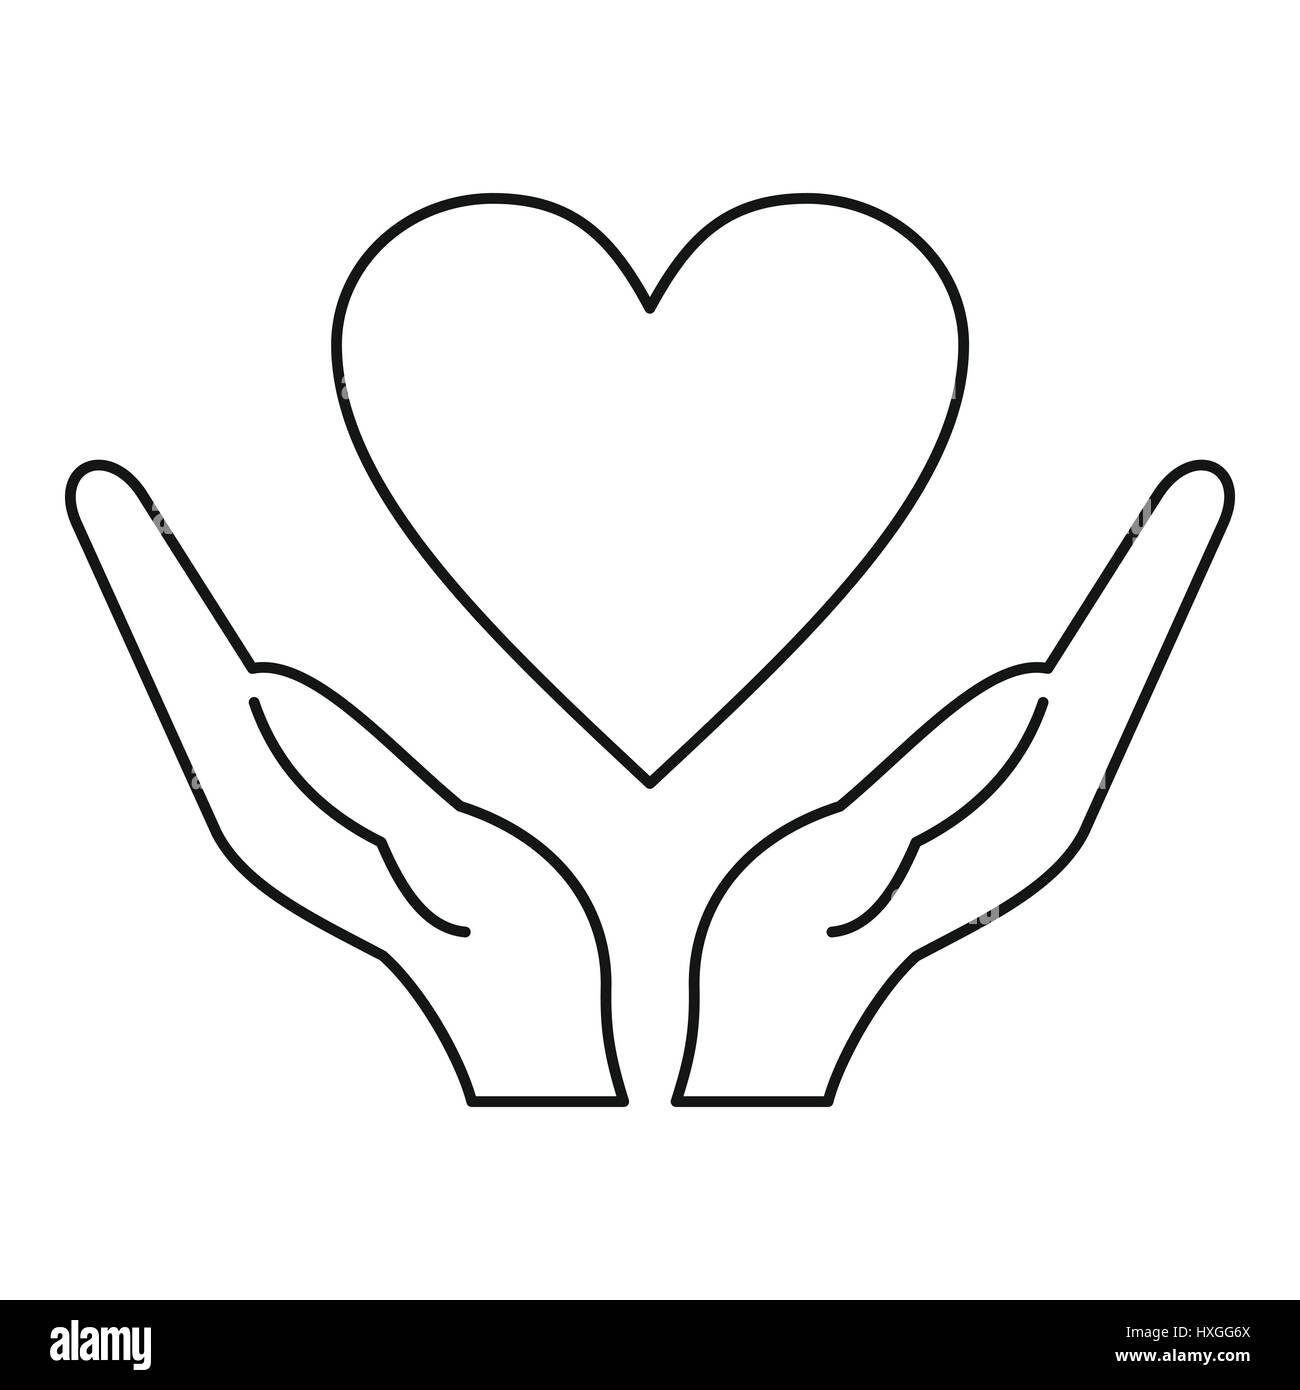 hands holding heart icon outline style stock vector art